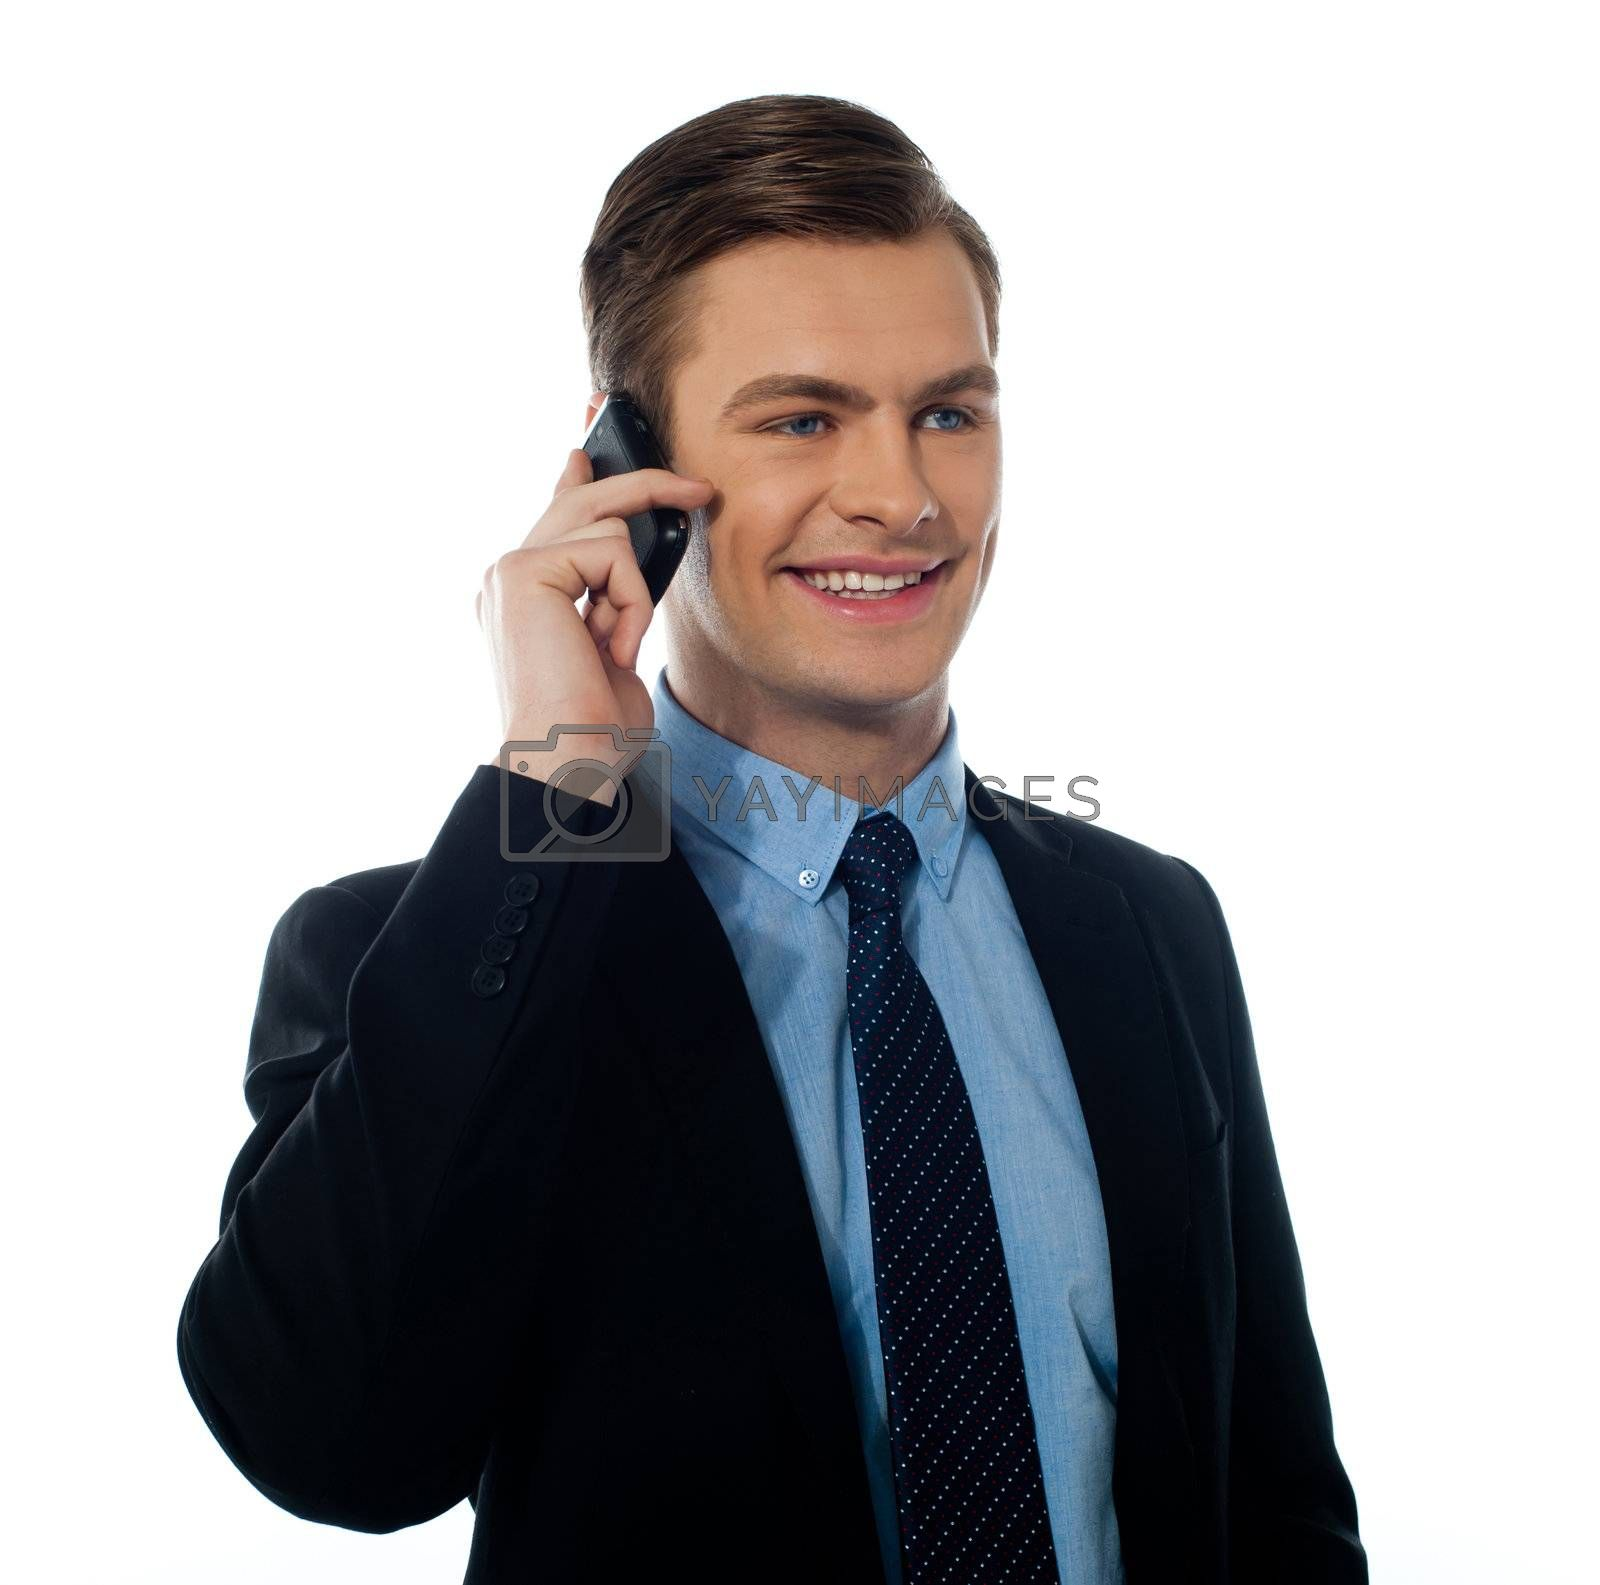 Corporate young man communicating via cell phone at work